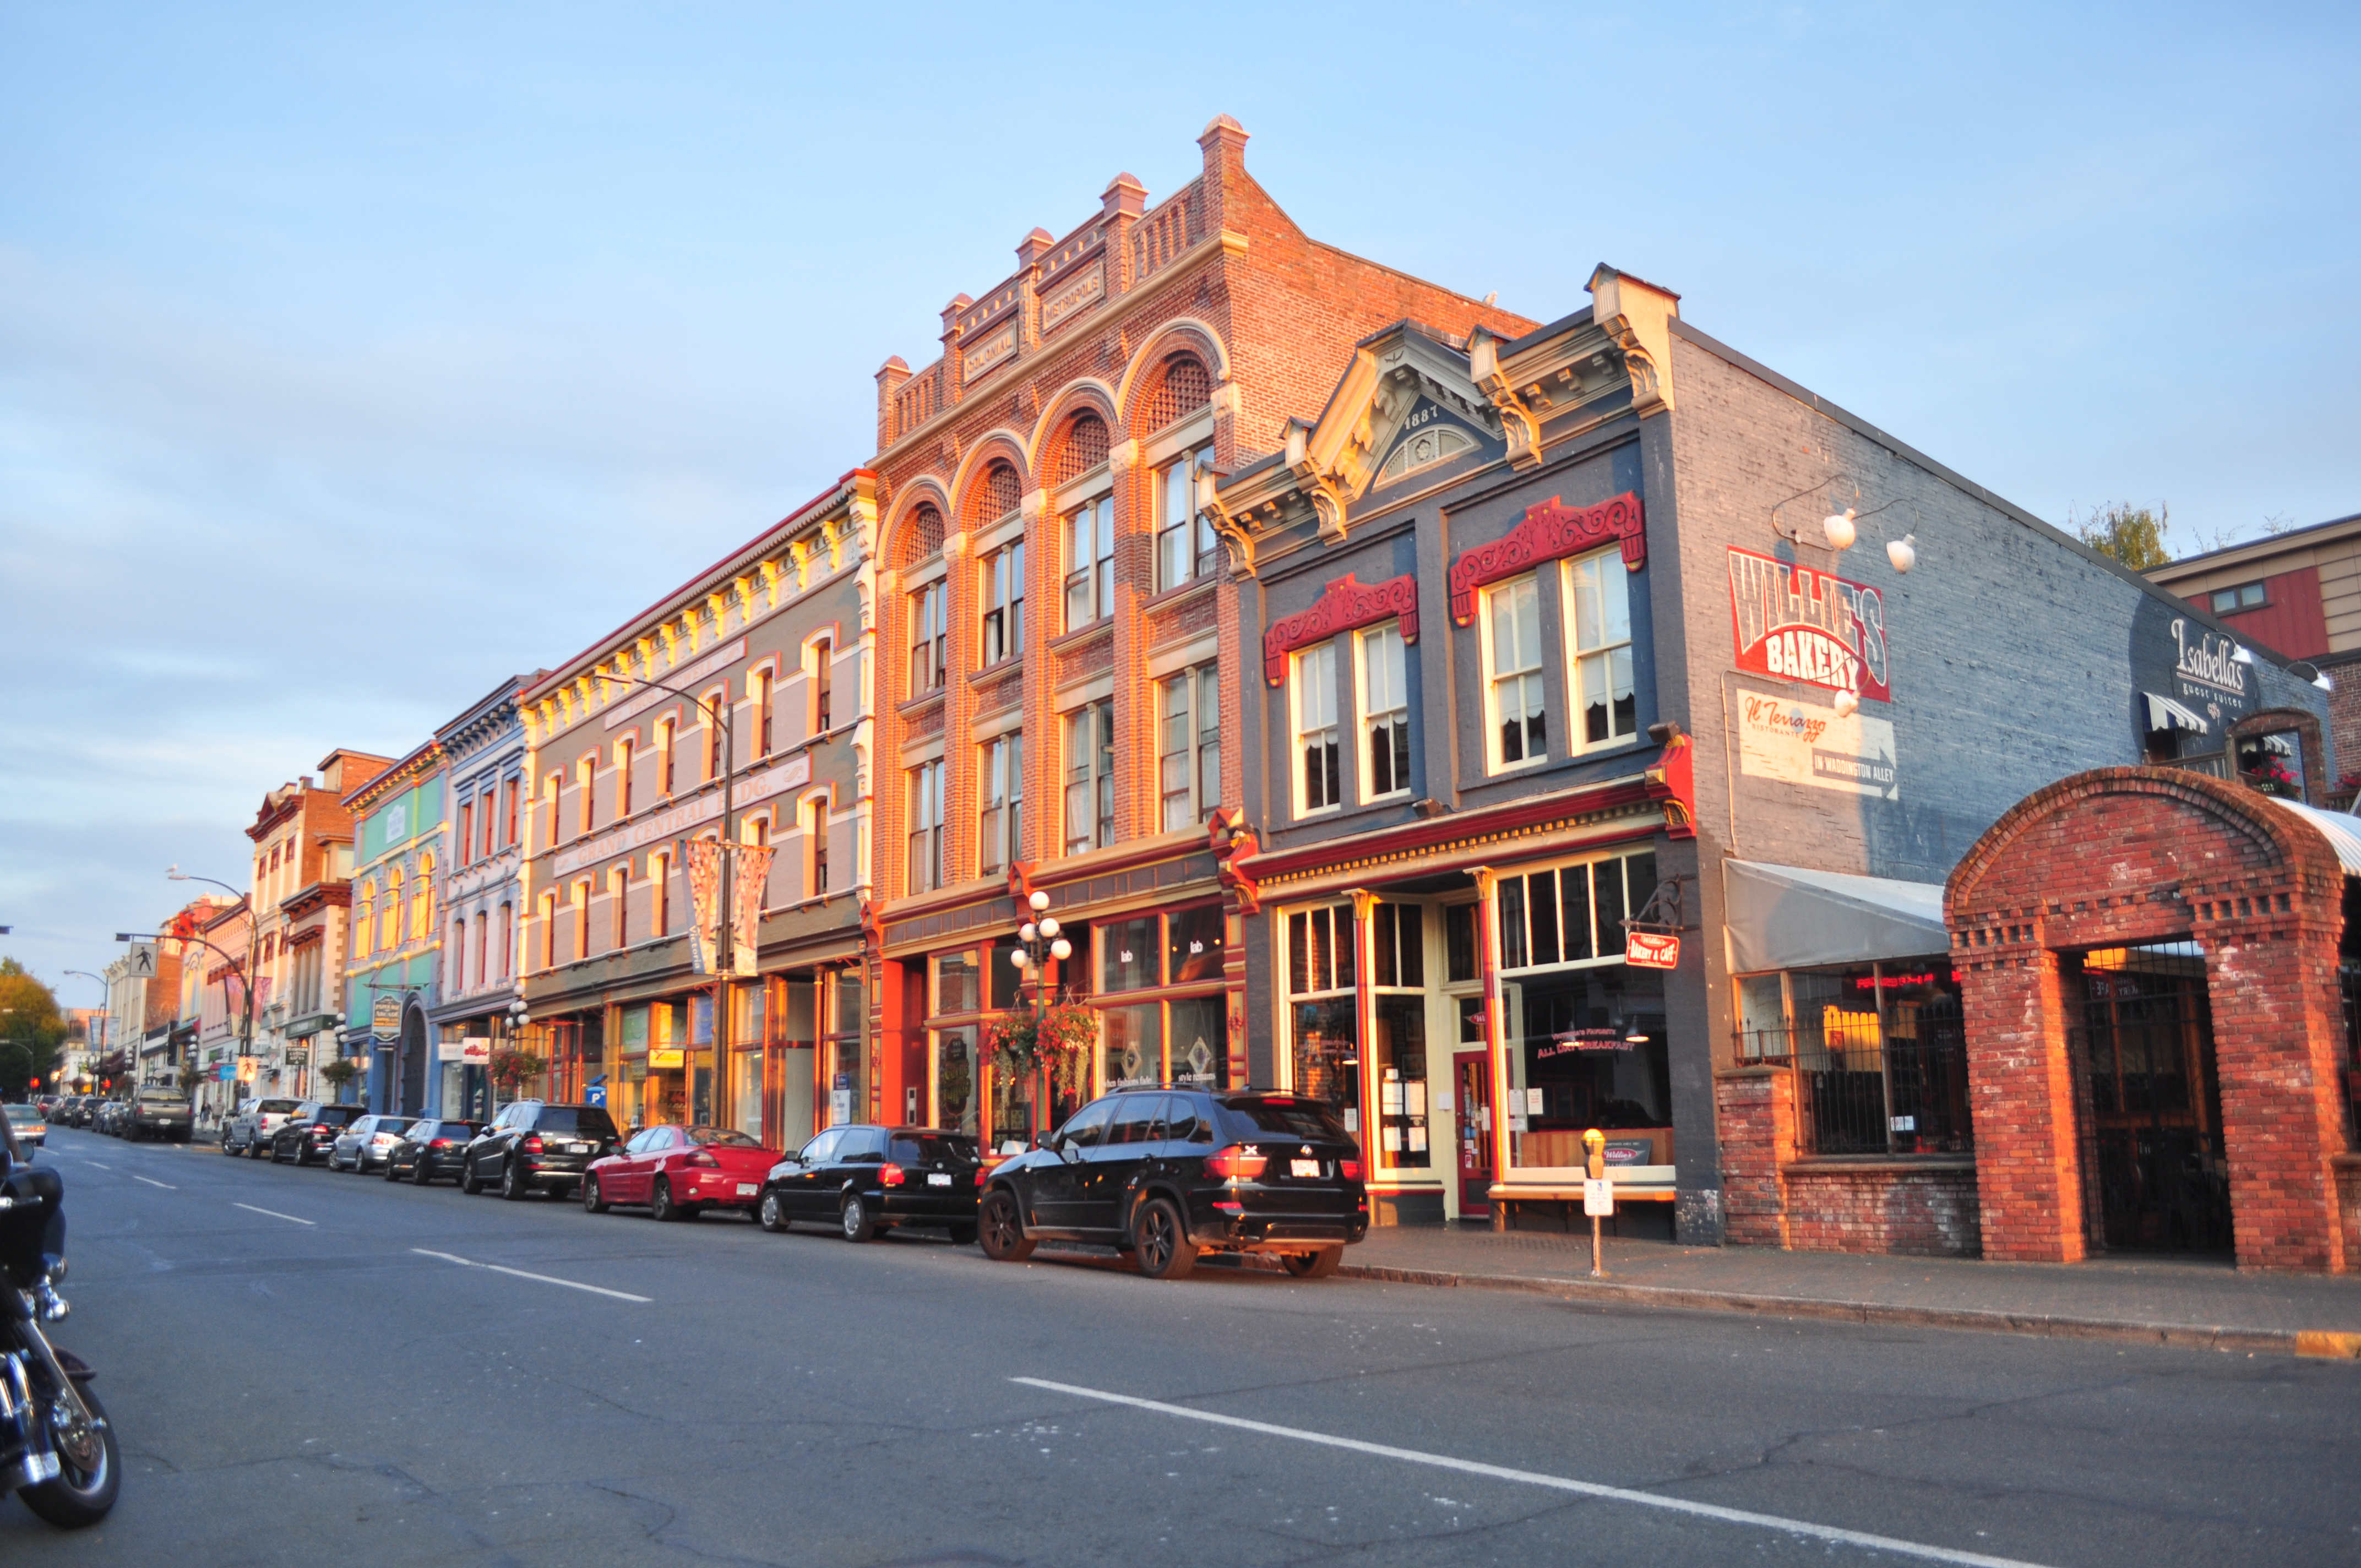 A town street is thriving thanks to economic development programs.